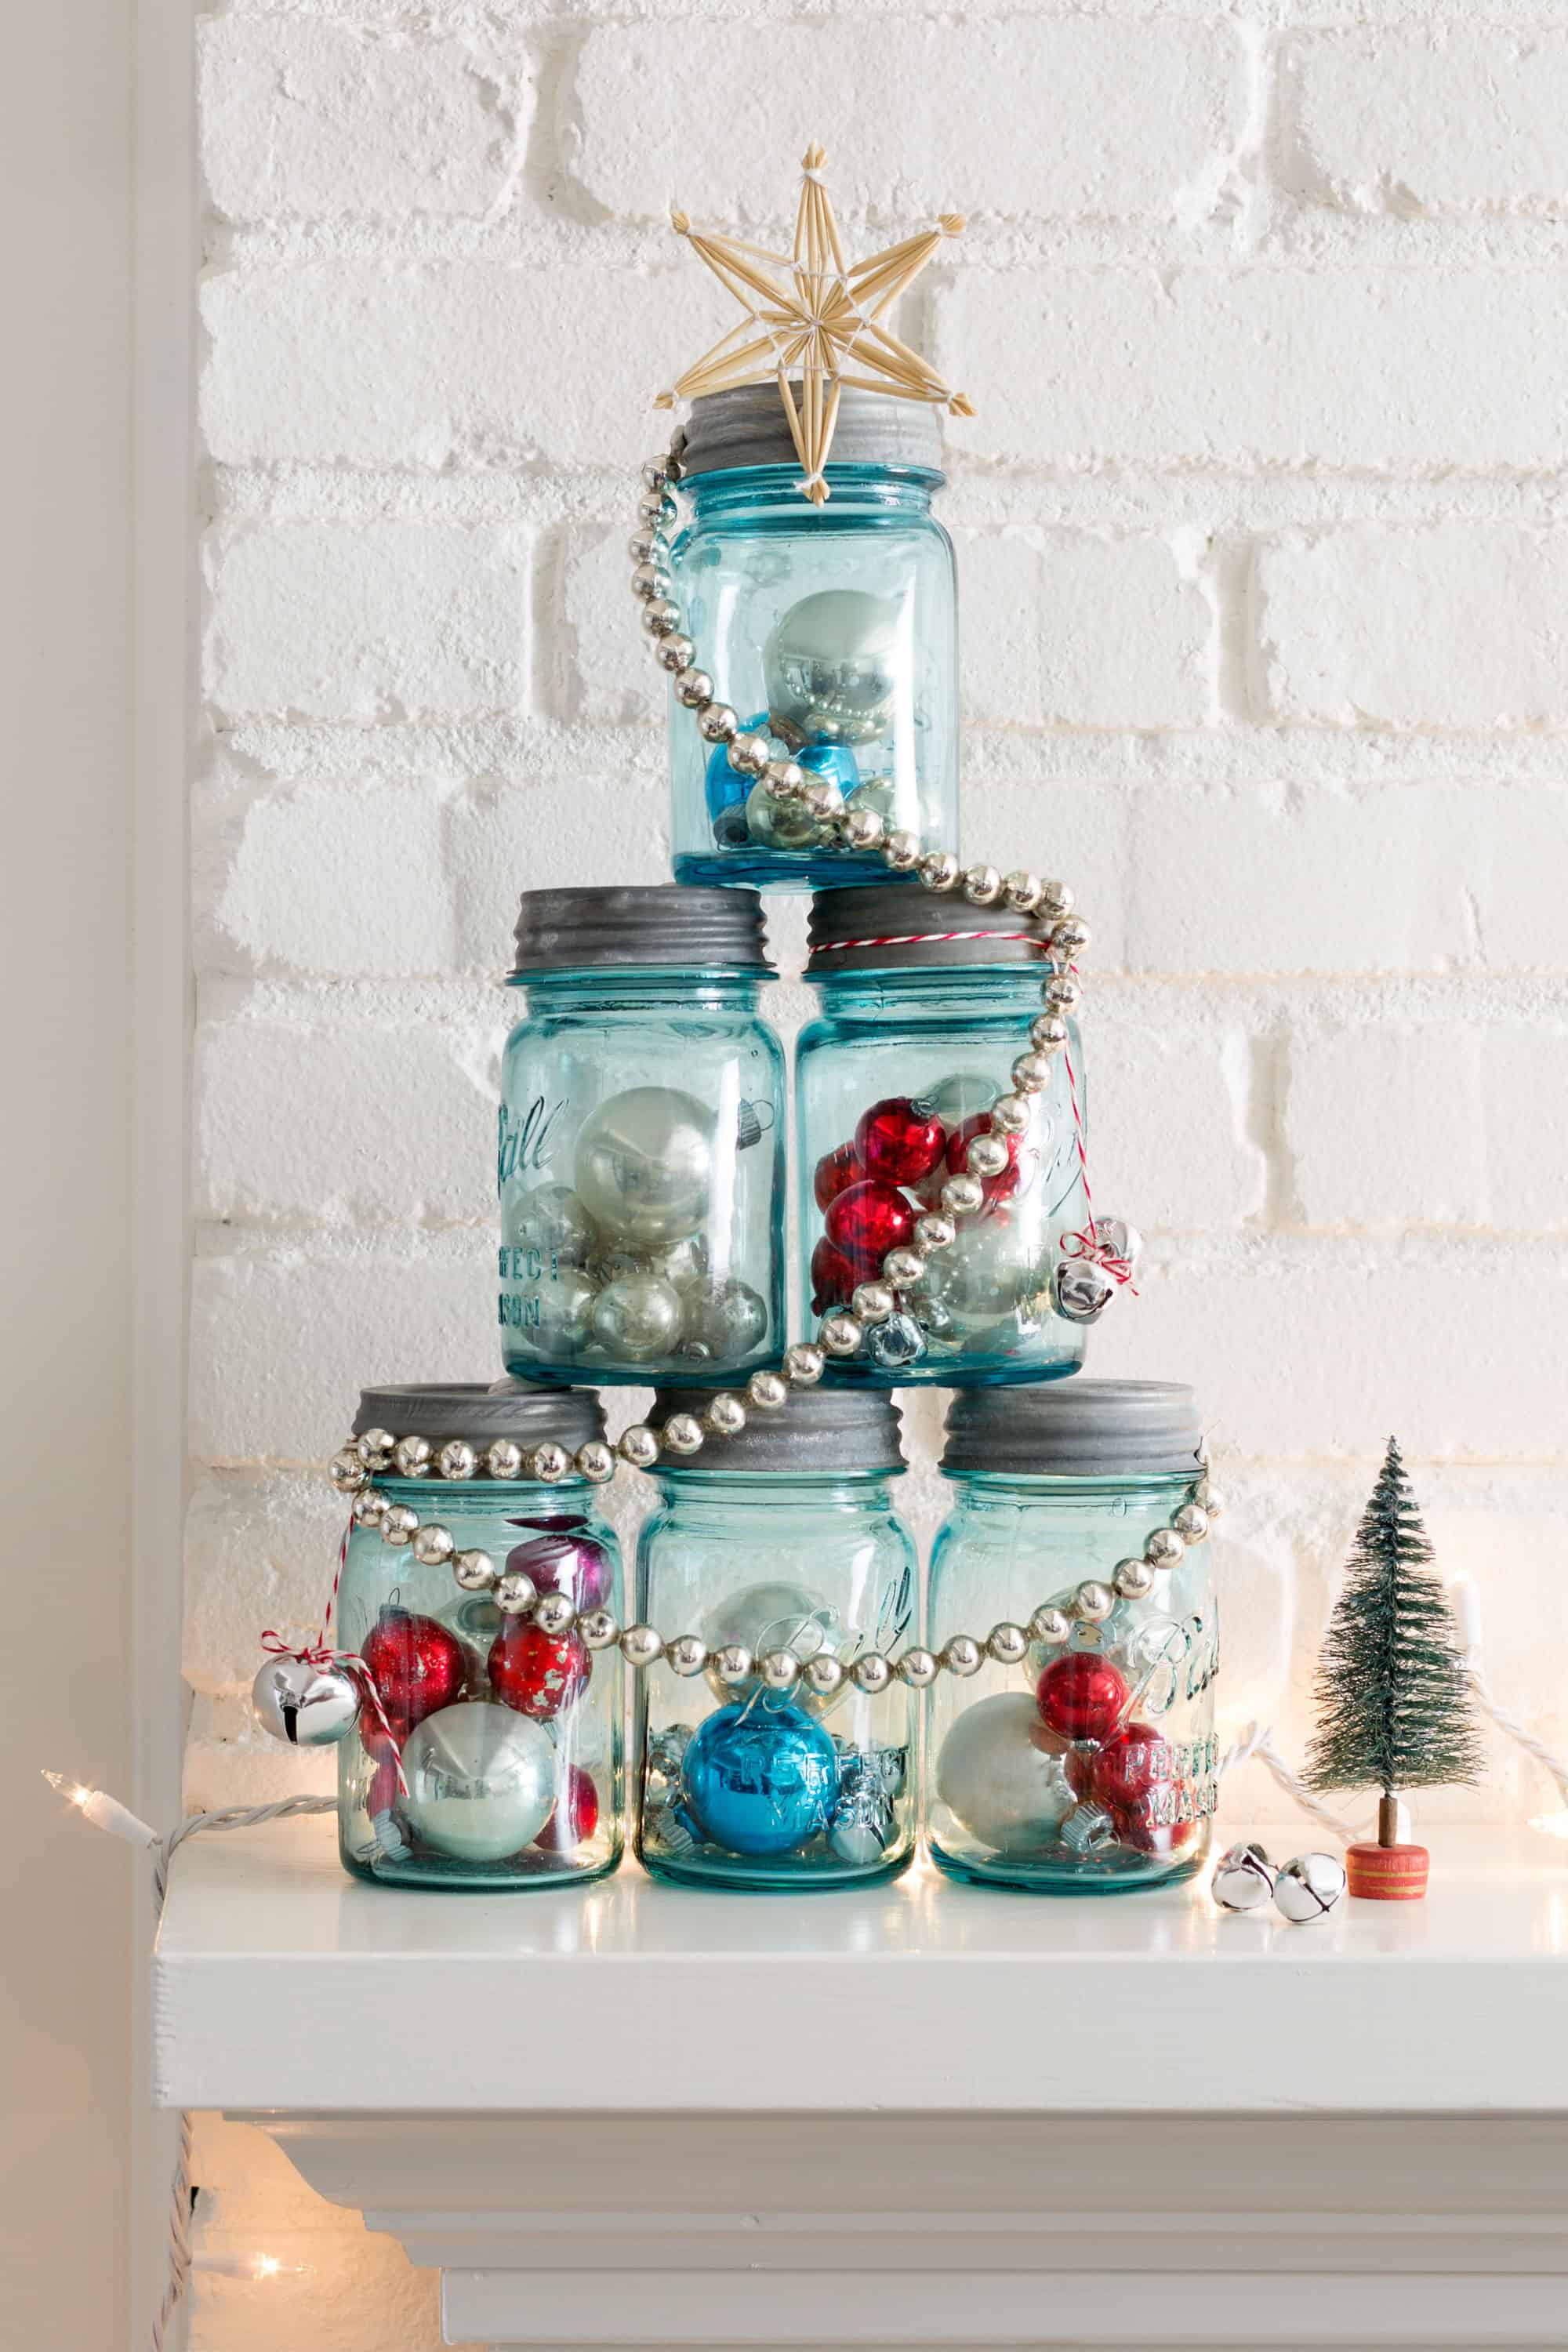 View in gallery homeamde christmas decor Vintage Christmas Decorations That Are Making a Huge Comeback